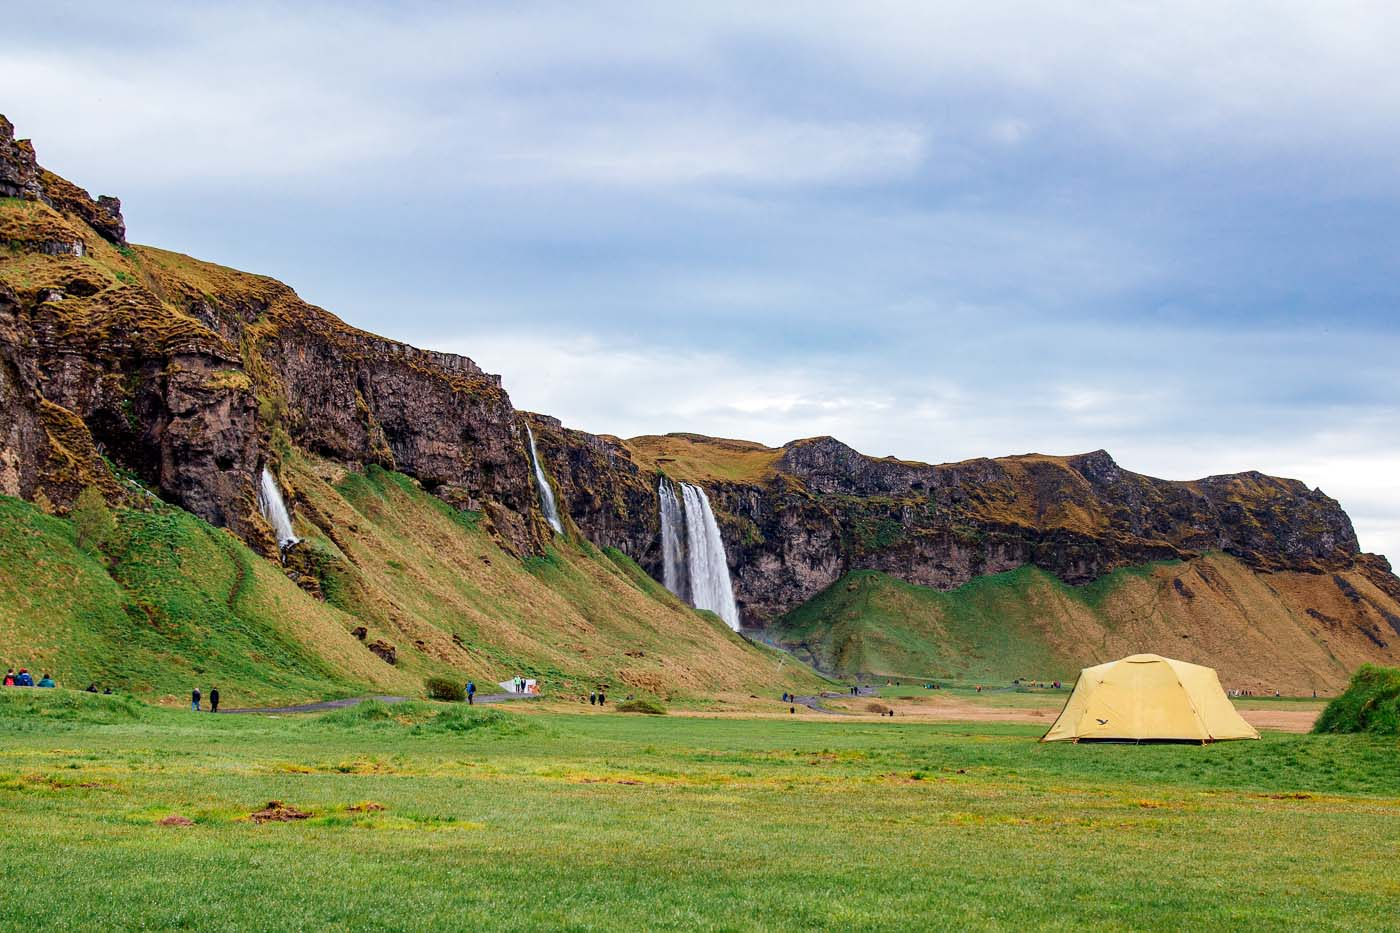 A yellow tent in a field with the Seljalandsfoss waterfall in the background